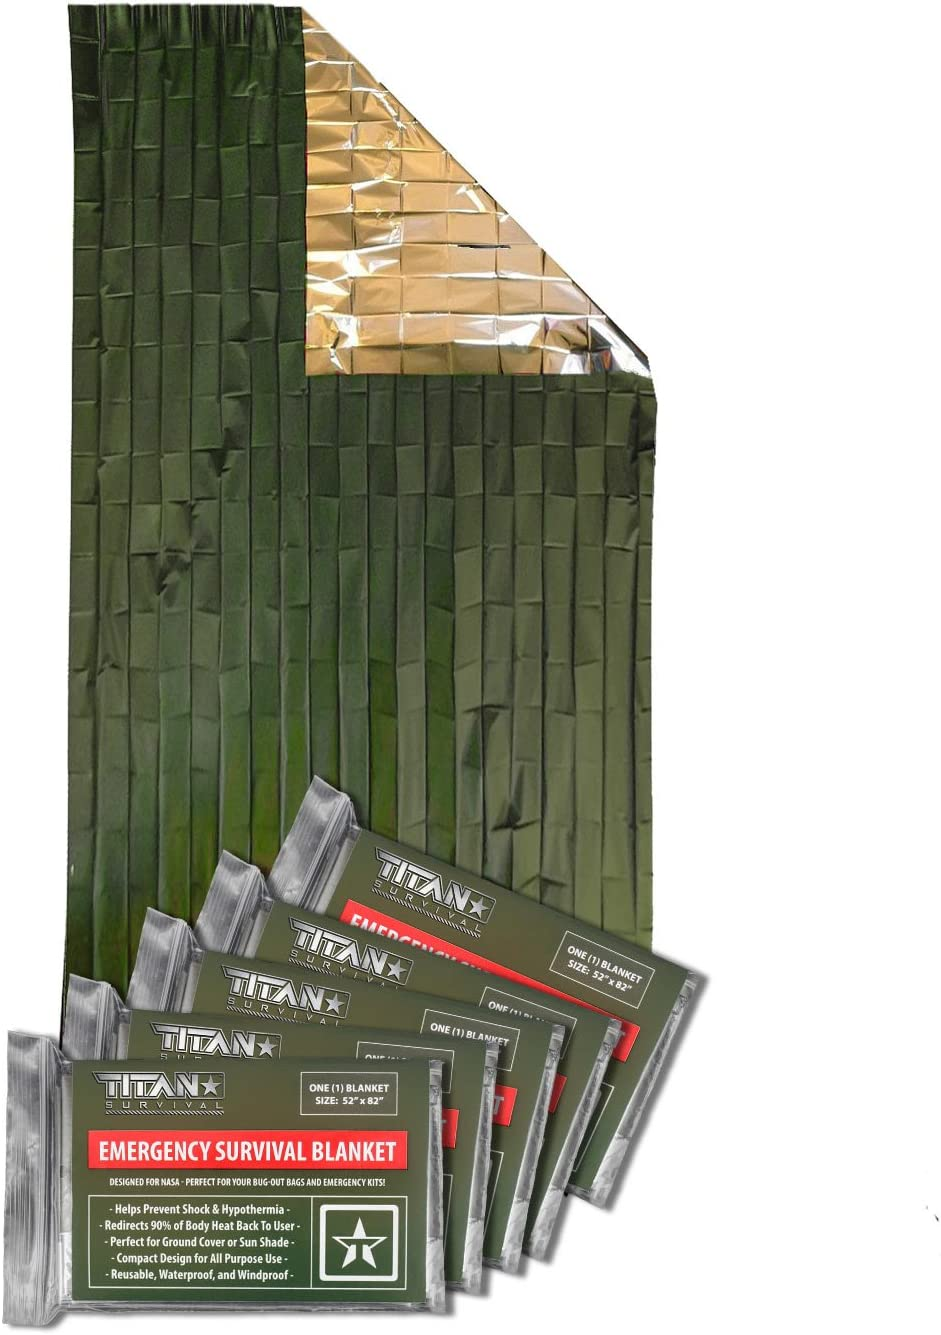 Titan Survival's Two-Sided Emergency Mylar Survival Blankets, 5-Pack (Olive-DRAB)